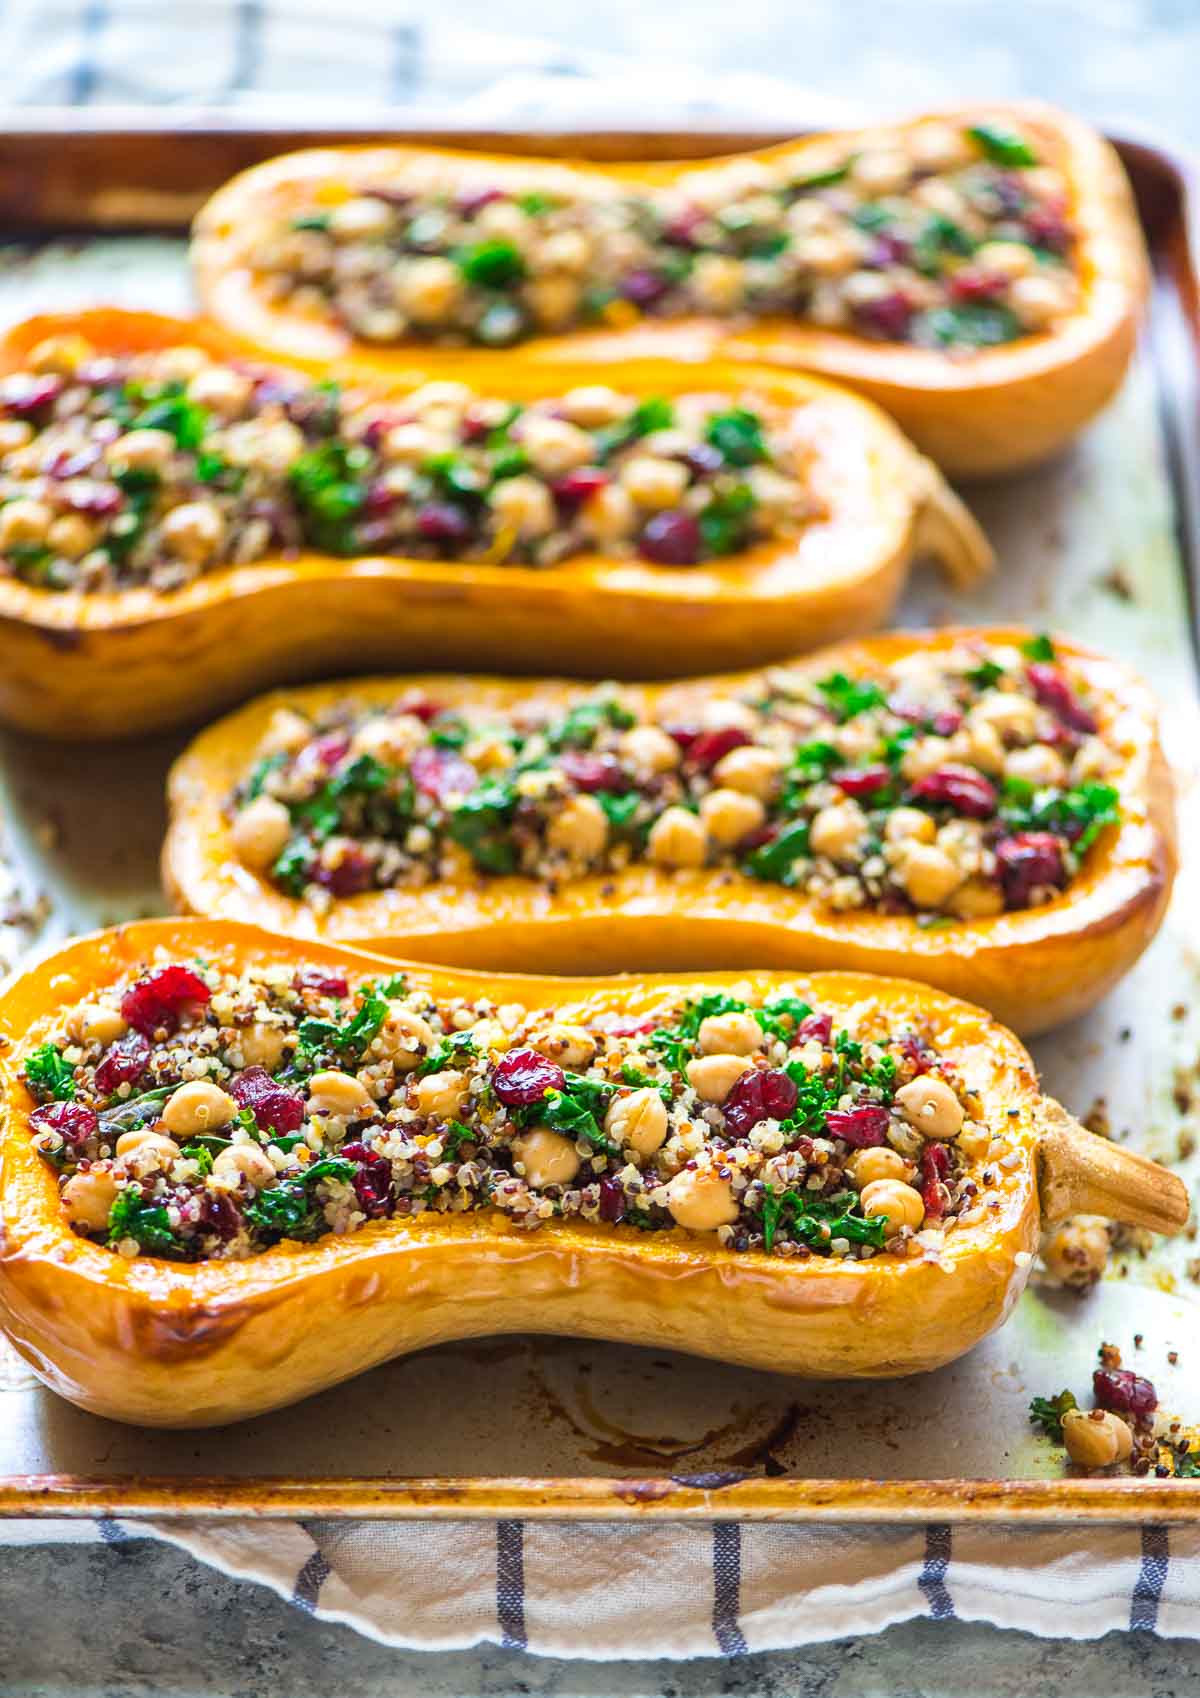 Healthy Fall Dinner Recipes  8 Healthy Fall Dinner Recipes MOMables Good Food